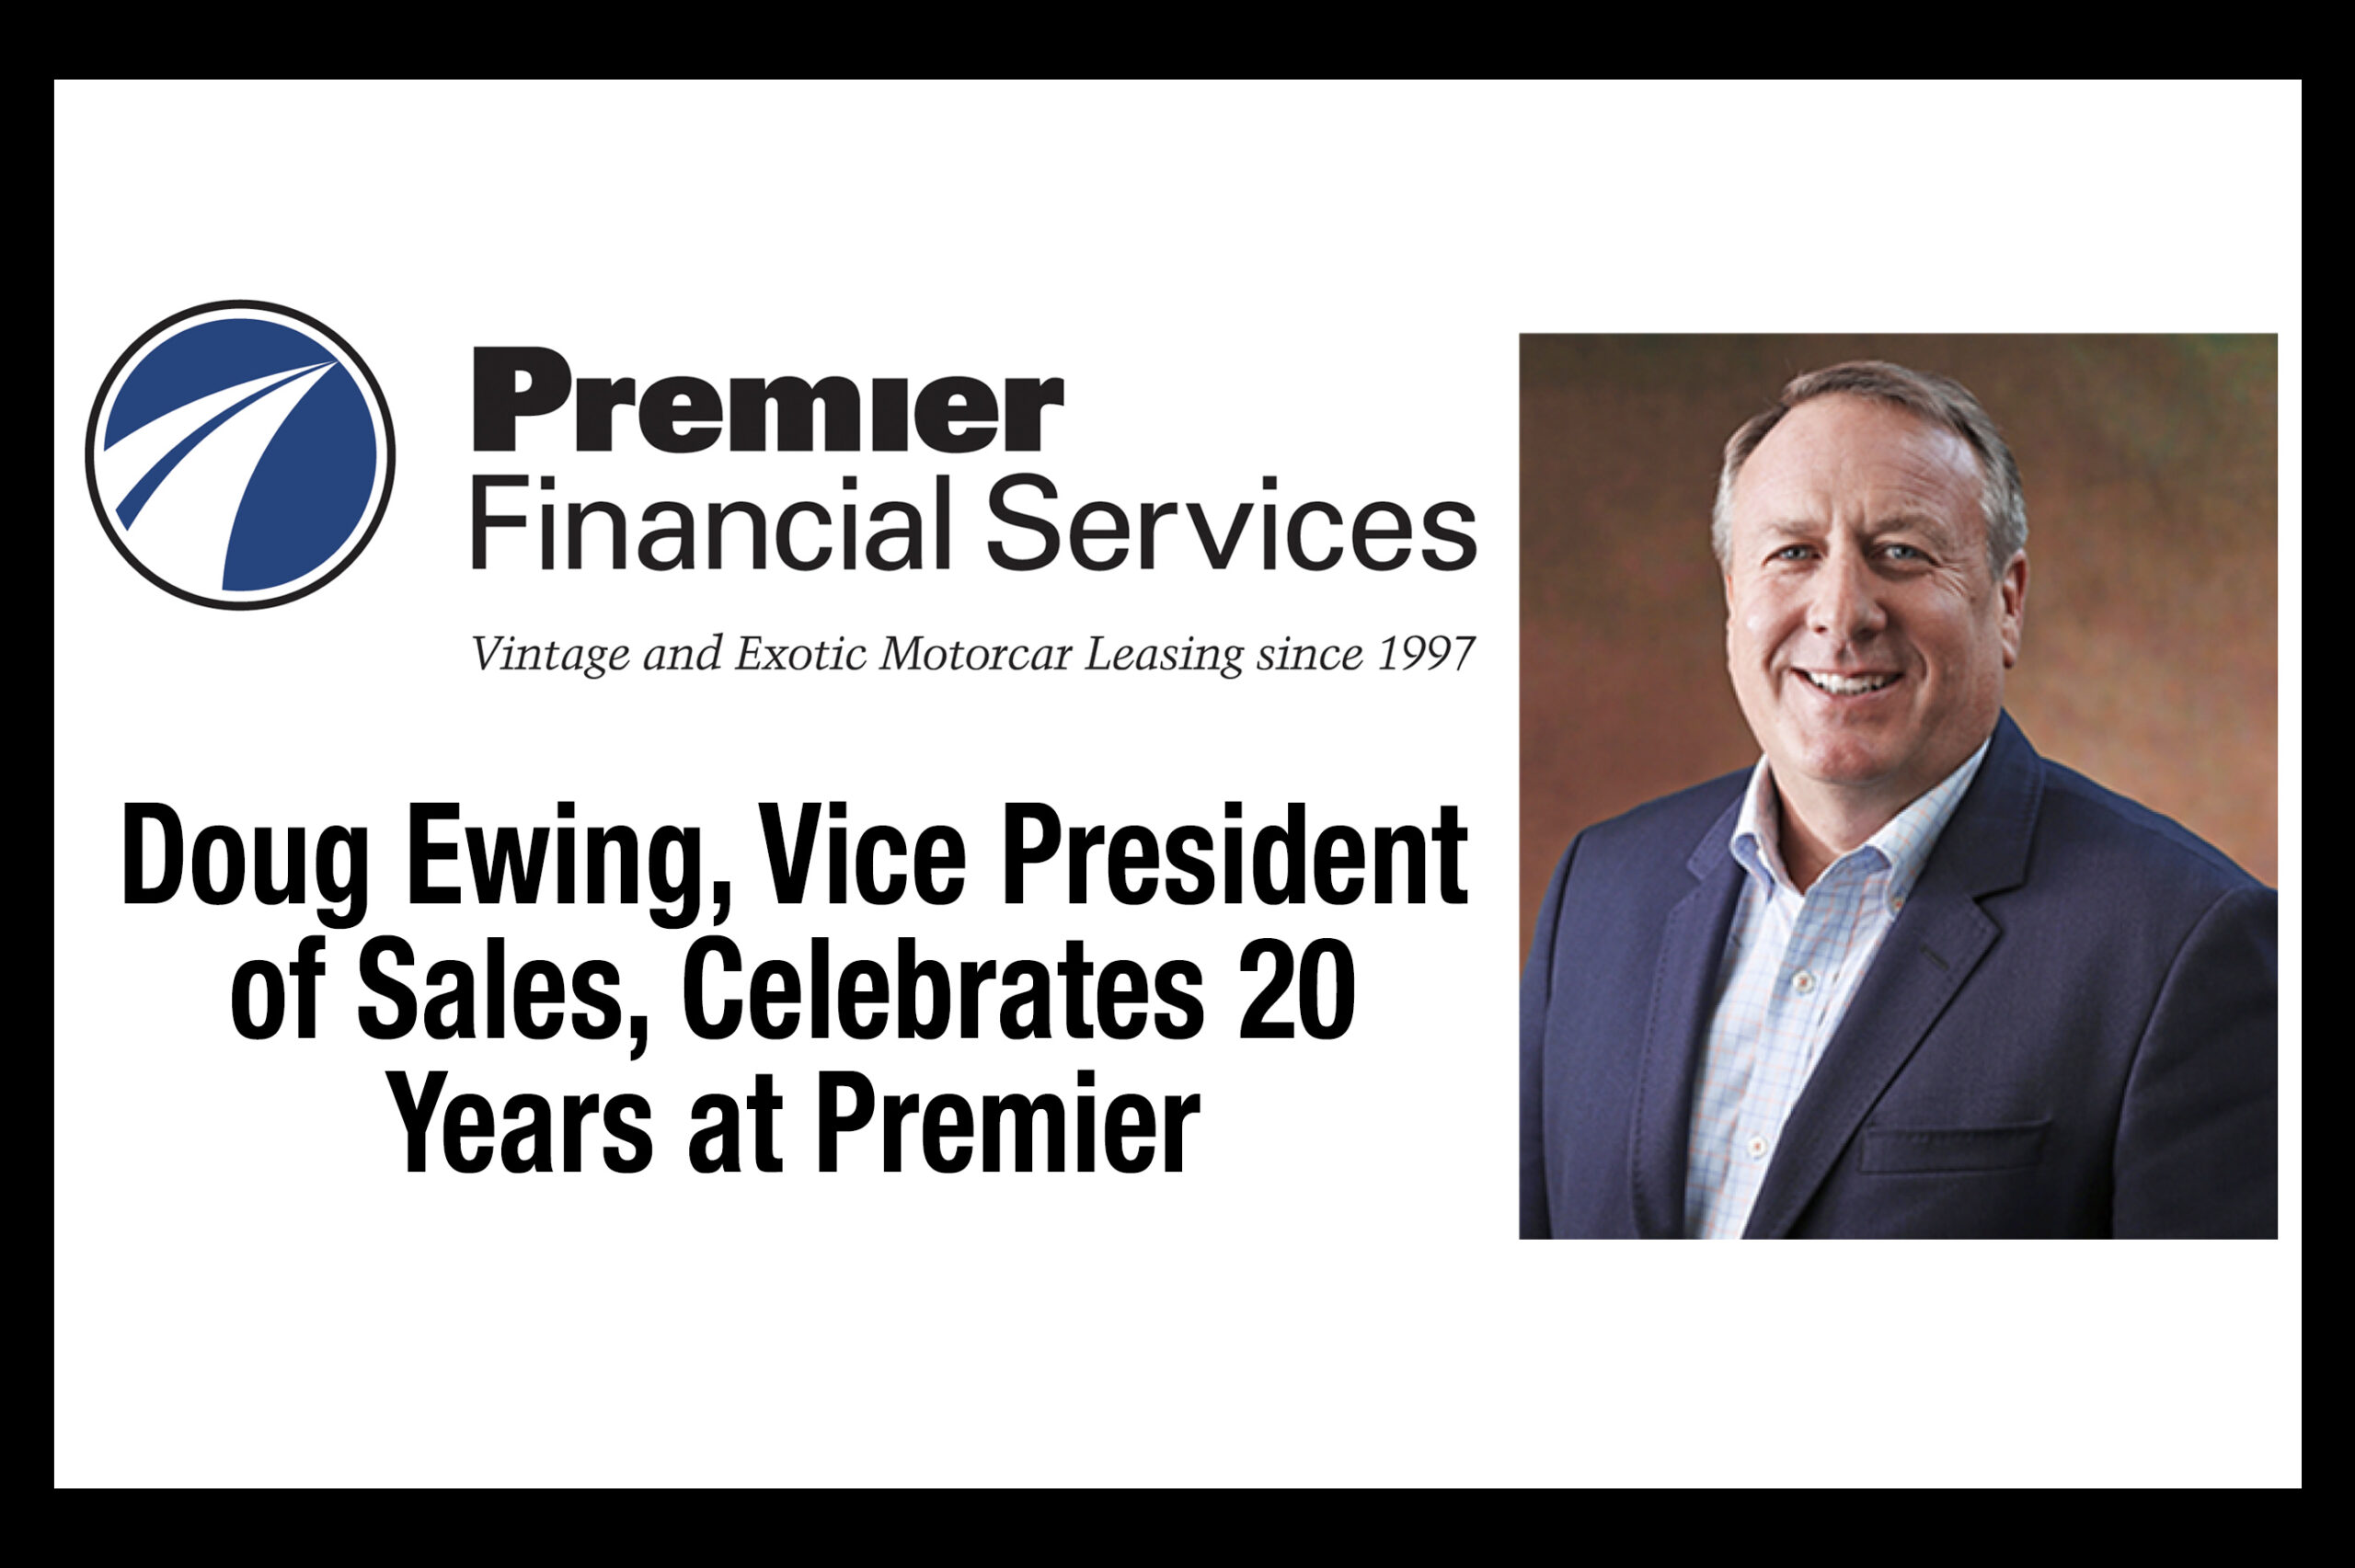 Doug Ewing, Vice President of Sales at Premier Financial Services Celebrates 20 Years